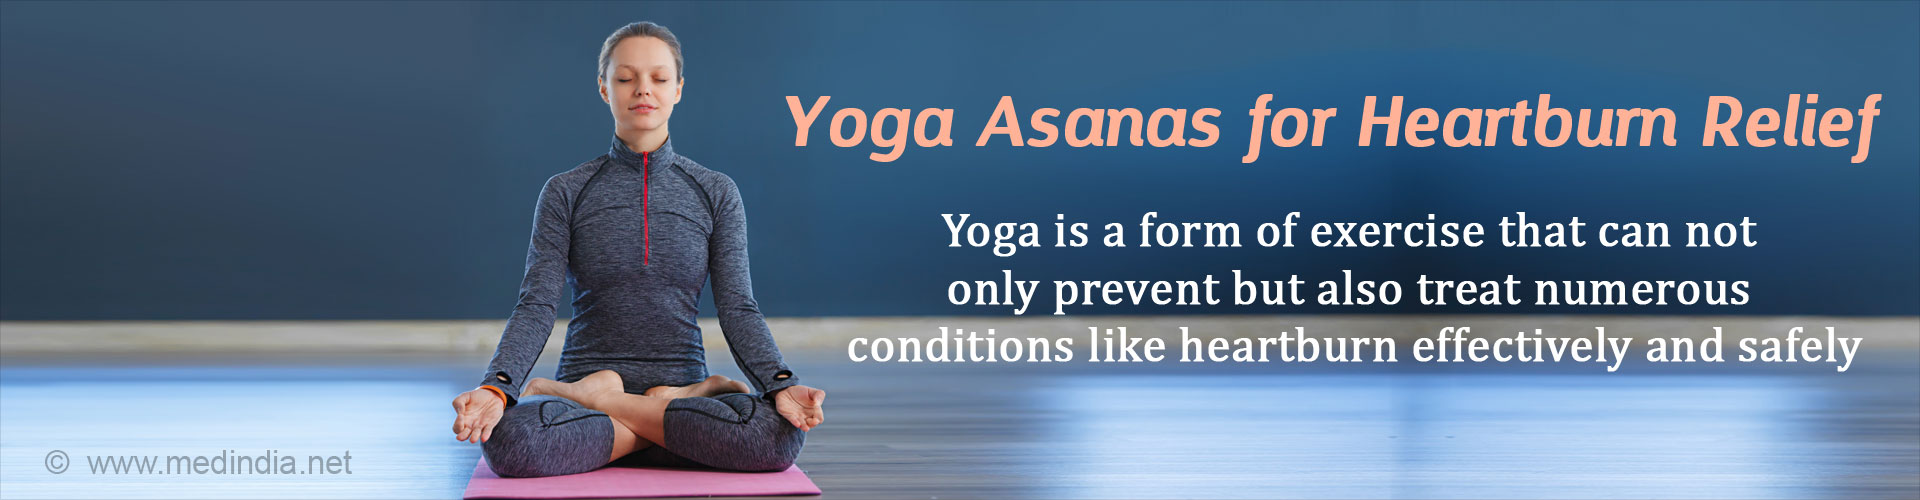 Yoga Asanas for Heartburn Relief: yoga is a form of exercise that can, not only prevent but also treat numerous conditions like heartburn effectively and safely